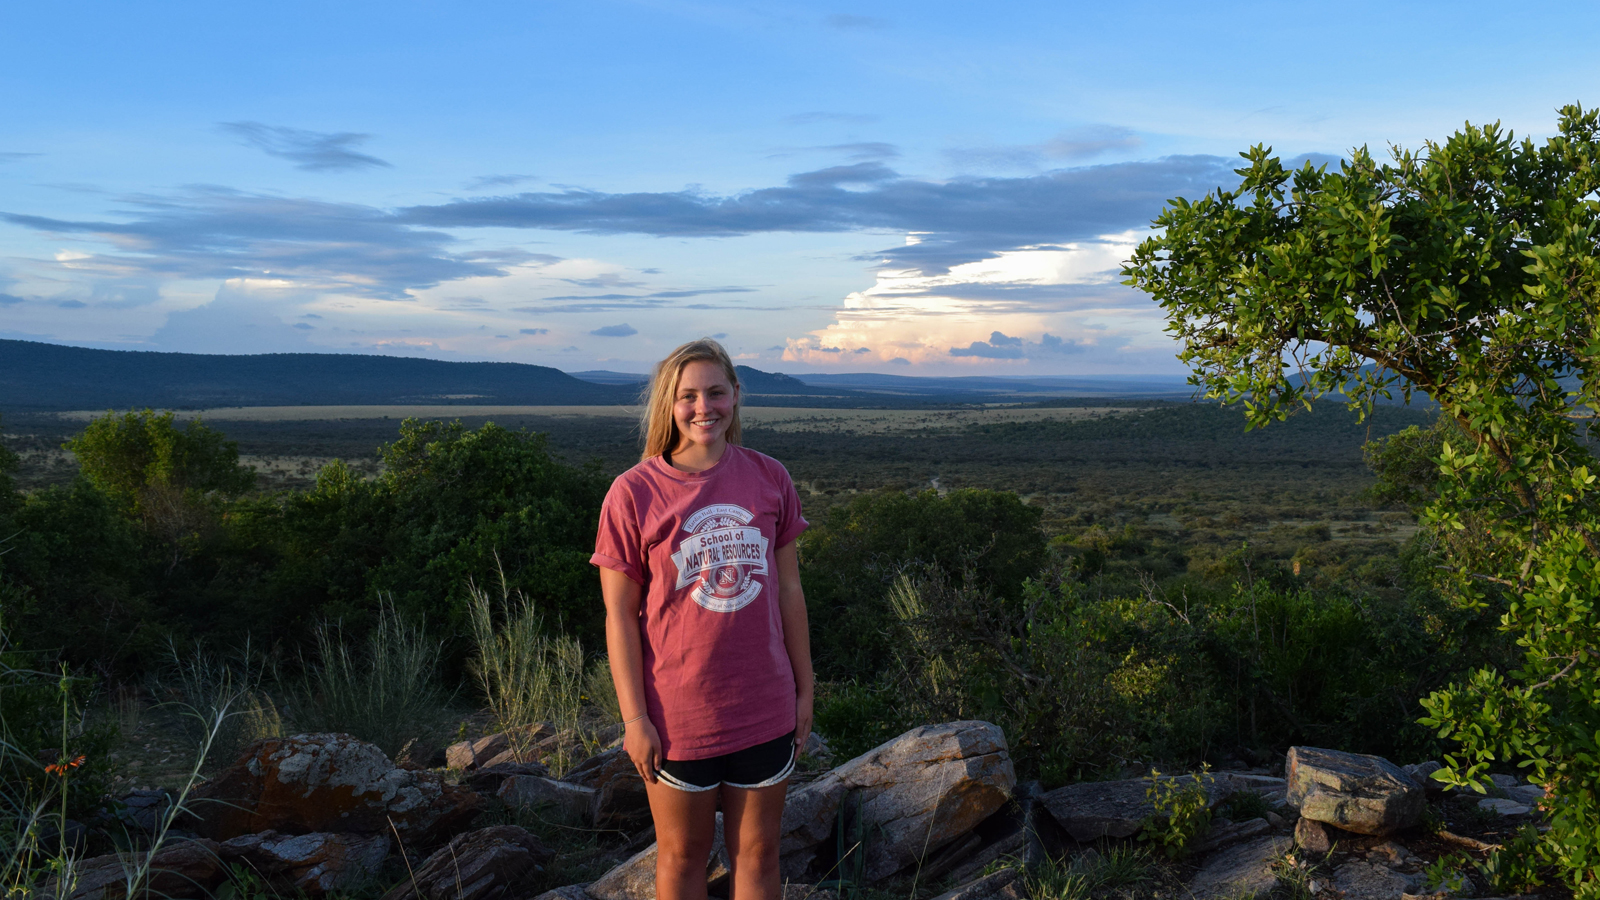 Grace Bullington, senior fisheries and wildlife major, was selected to represent the University of Nebraska-Lincoln and the School of Natural Resources at the Women Wildlife Filmmakers Workshop at the Cocobolo Nature Reserve in Panama this spring.  See the finished video she co-created with Kori Price.